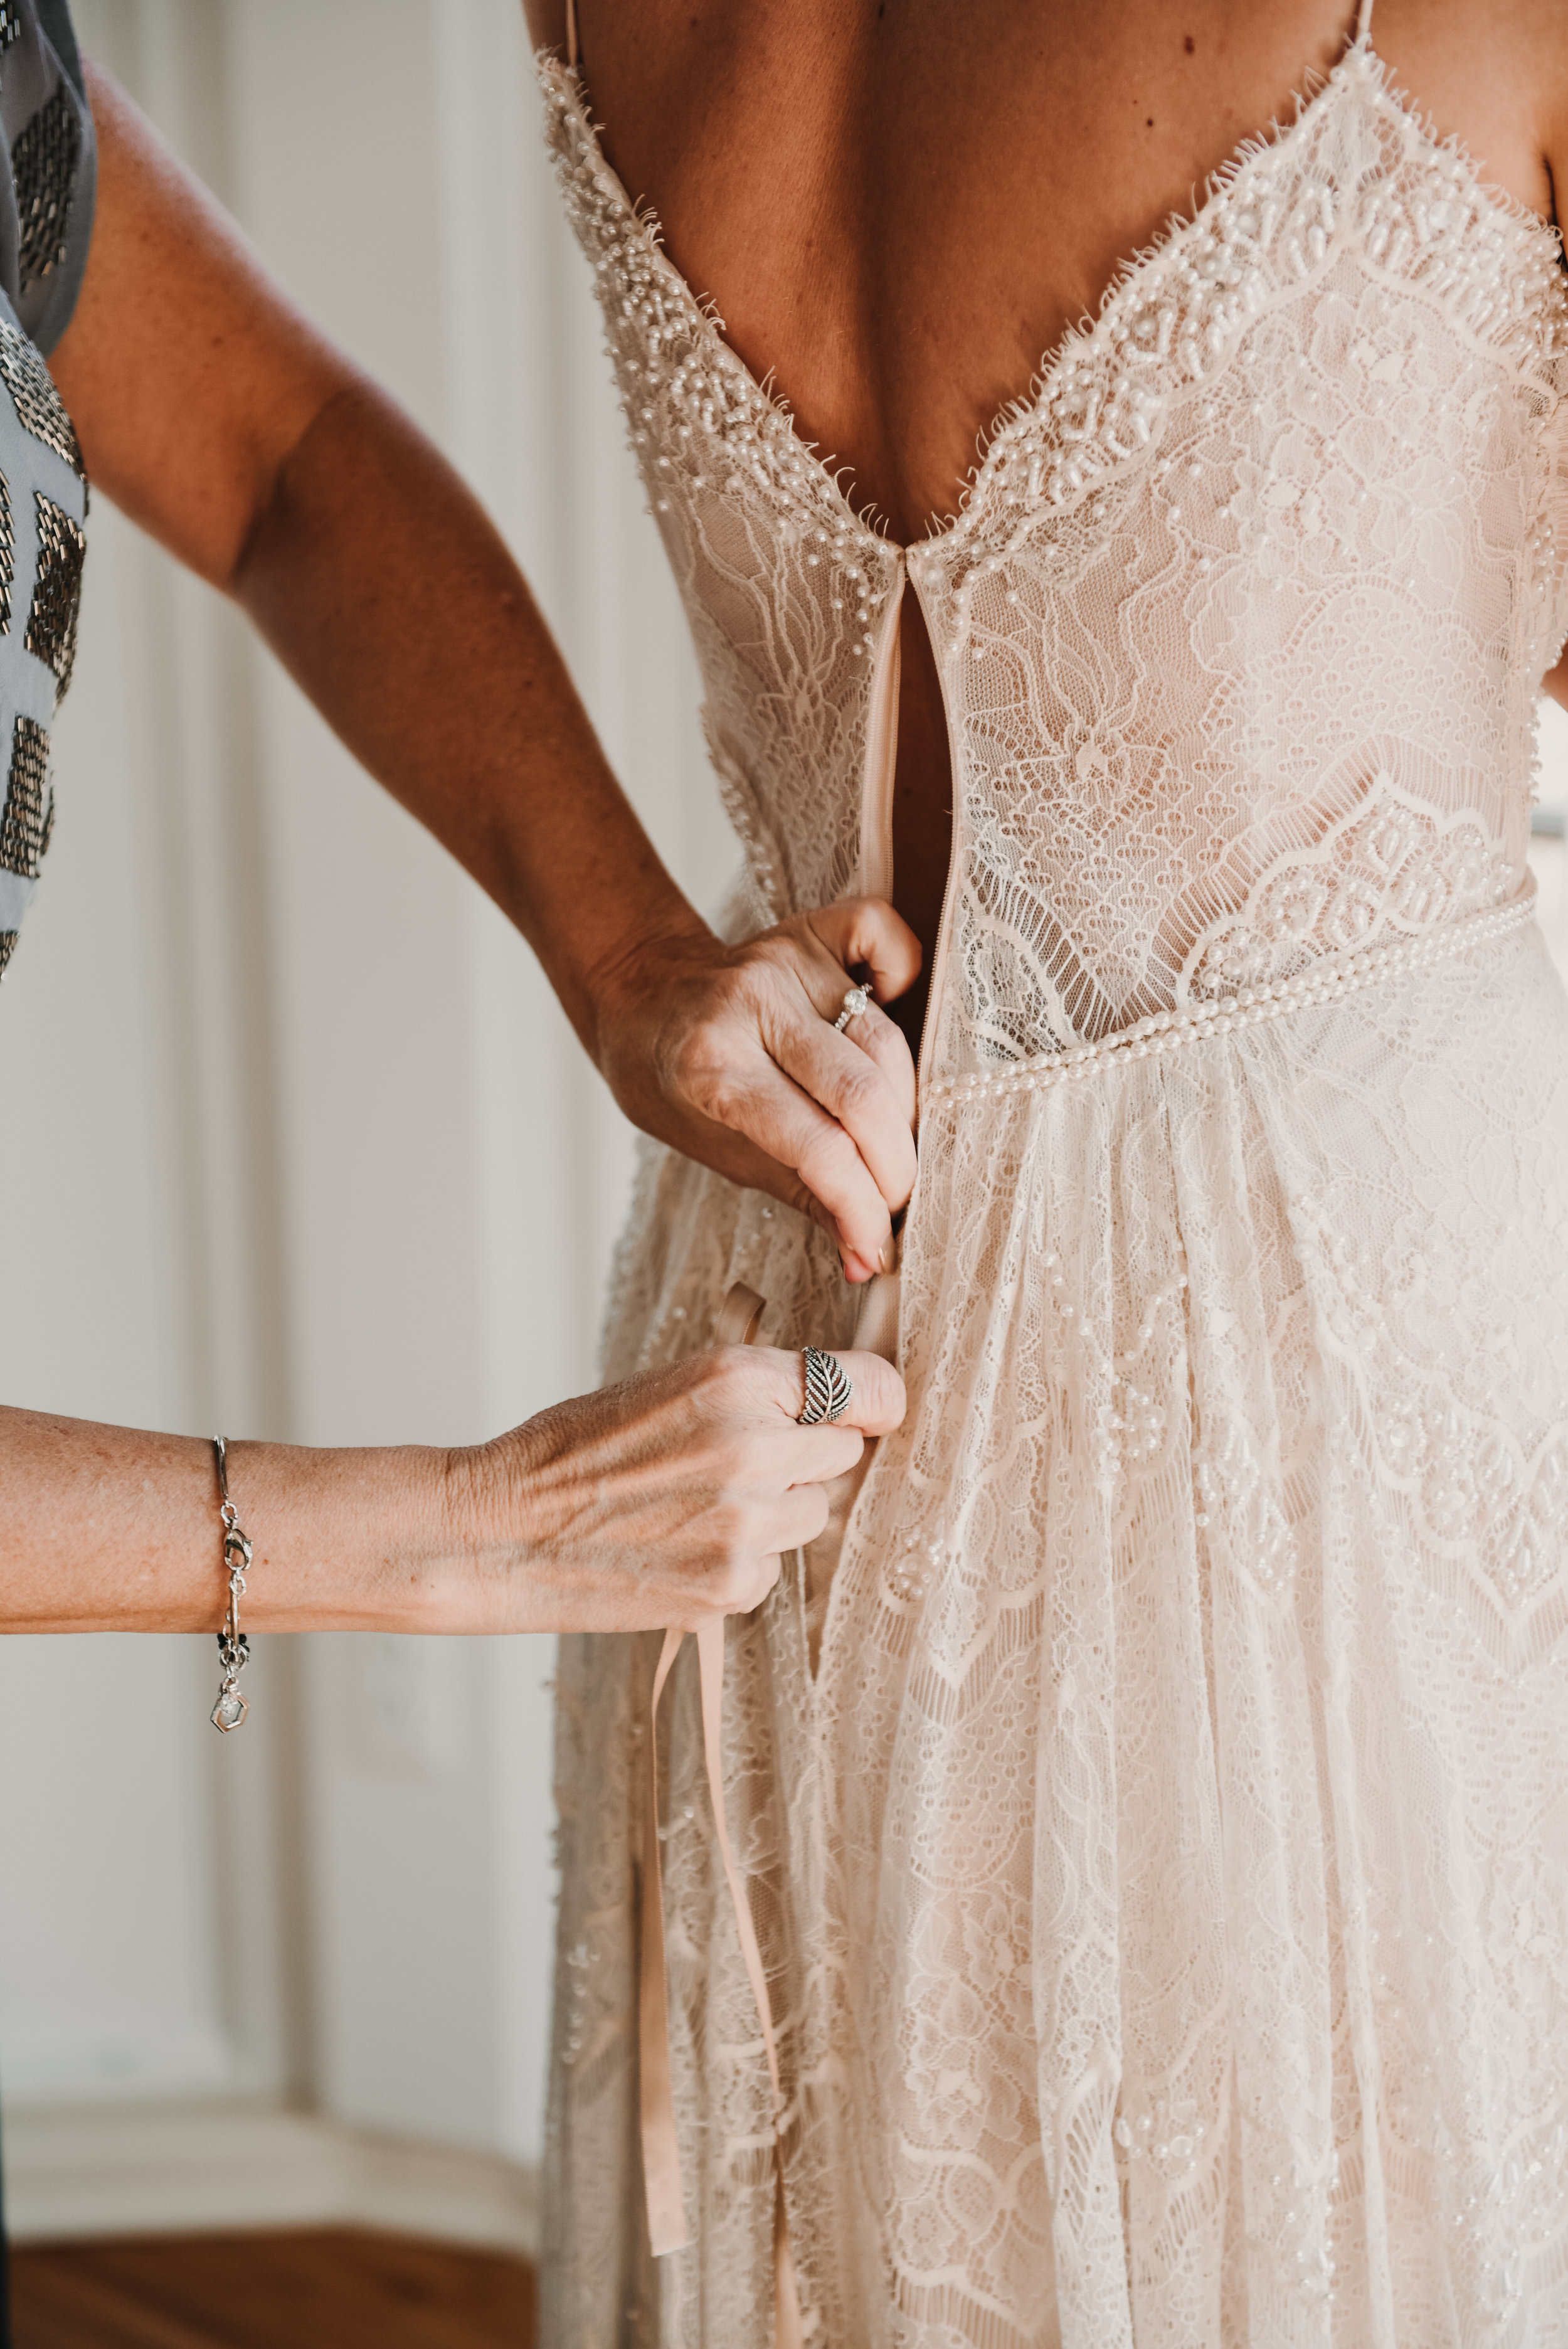 Mother of bride zipping up brides dress